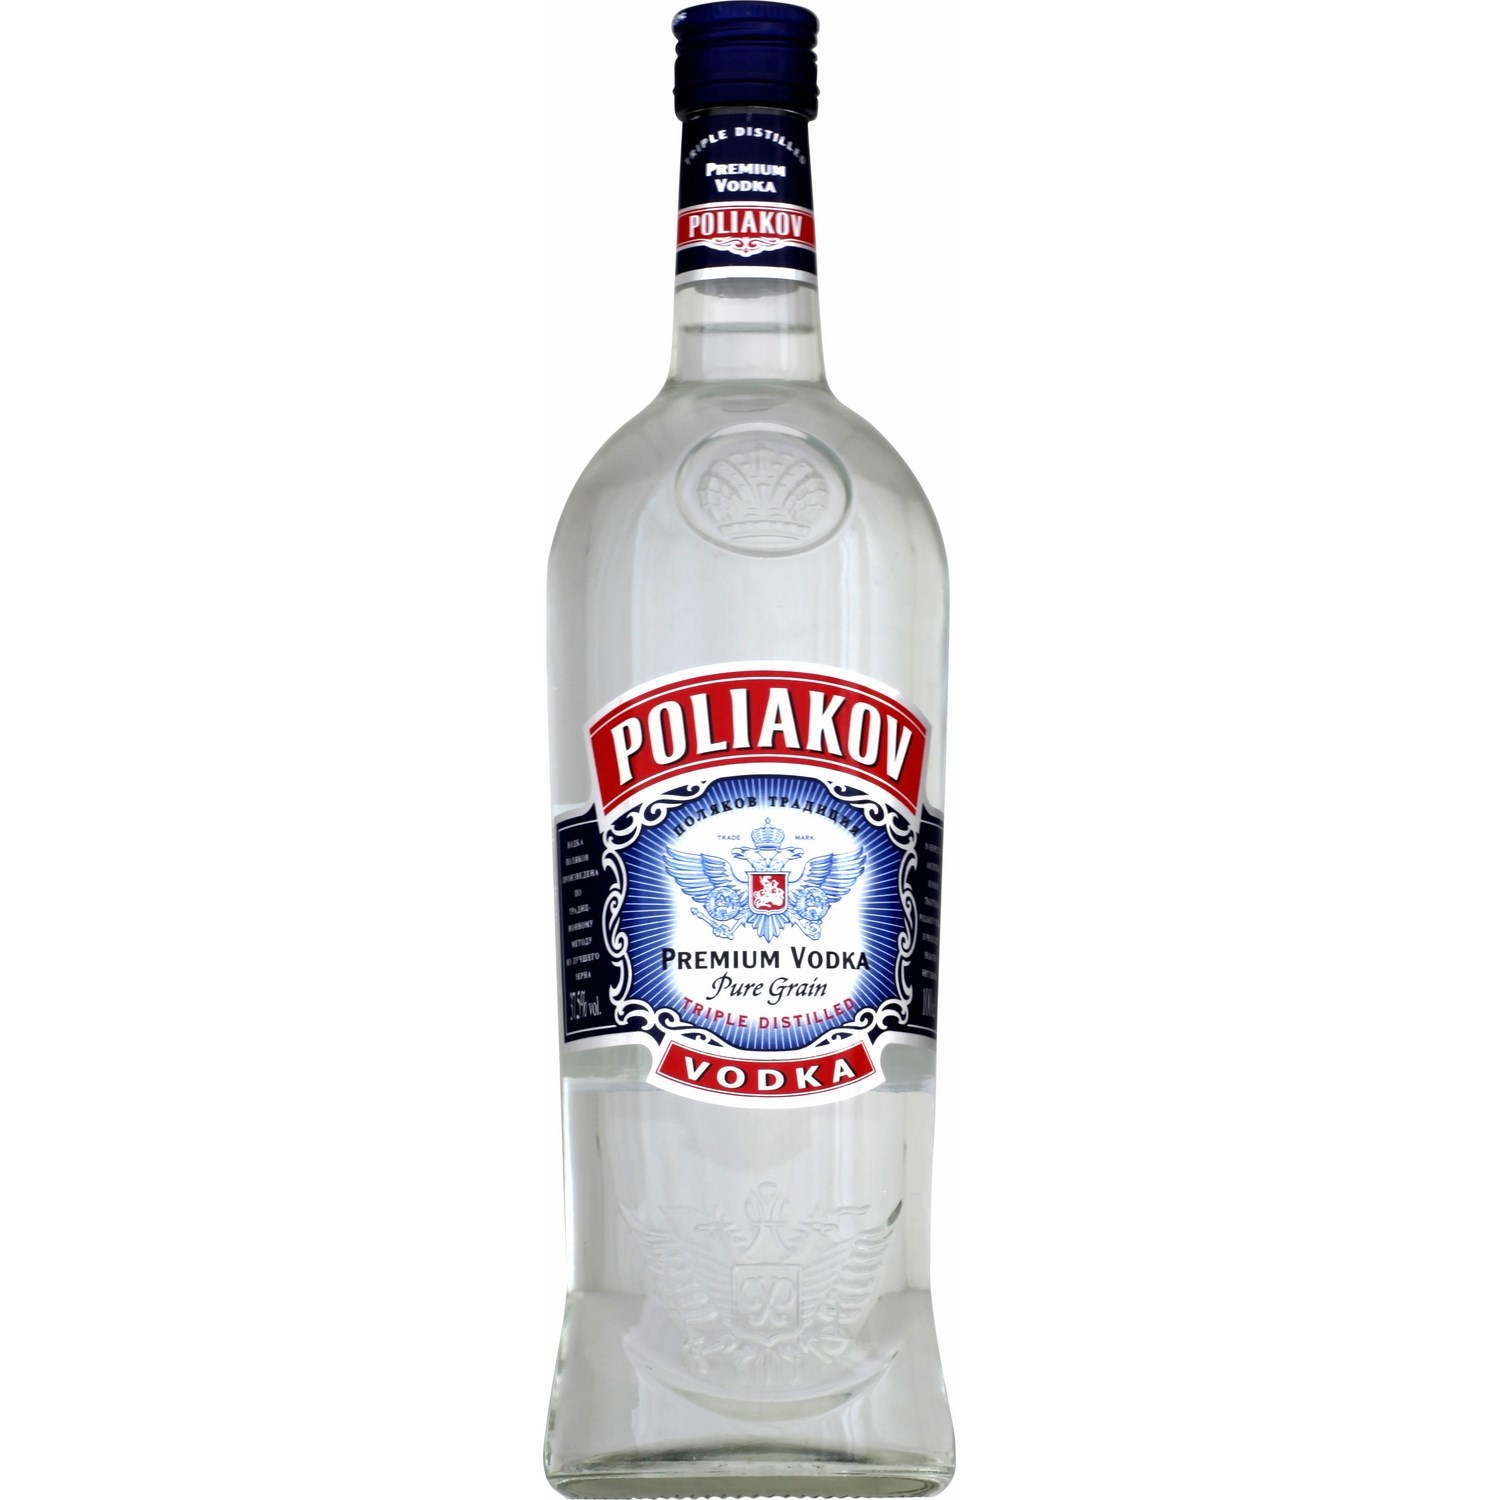 VODKA POLIAKOV 37.5VOL 0.700ML